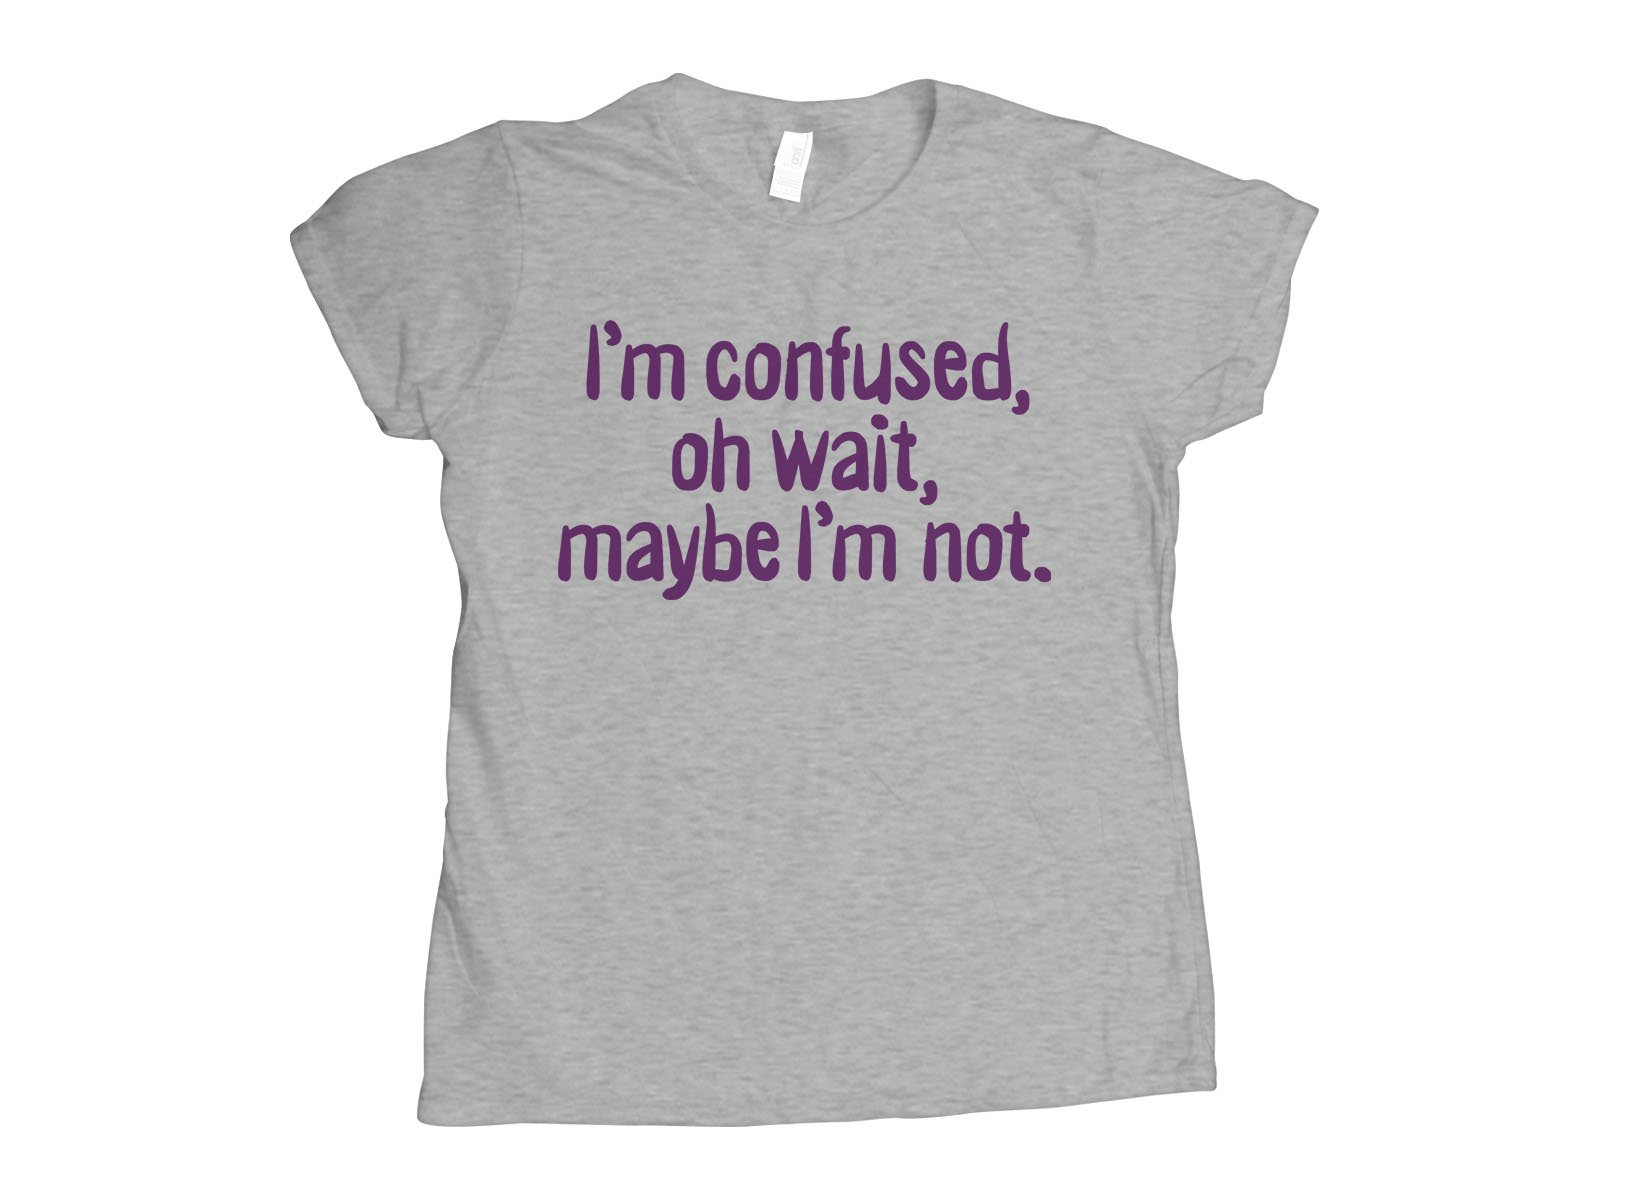 I'm Confused, Oh Wait on Womens T-Shirt